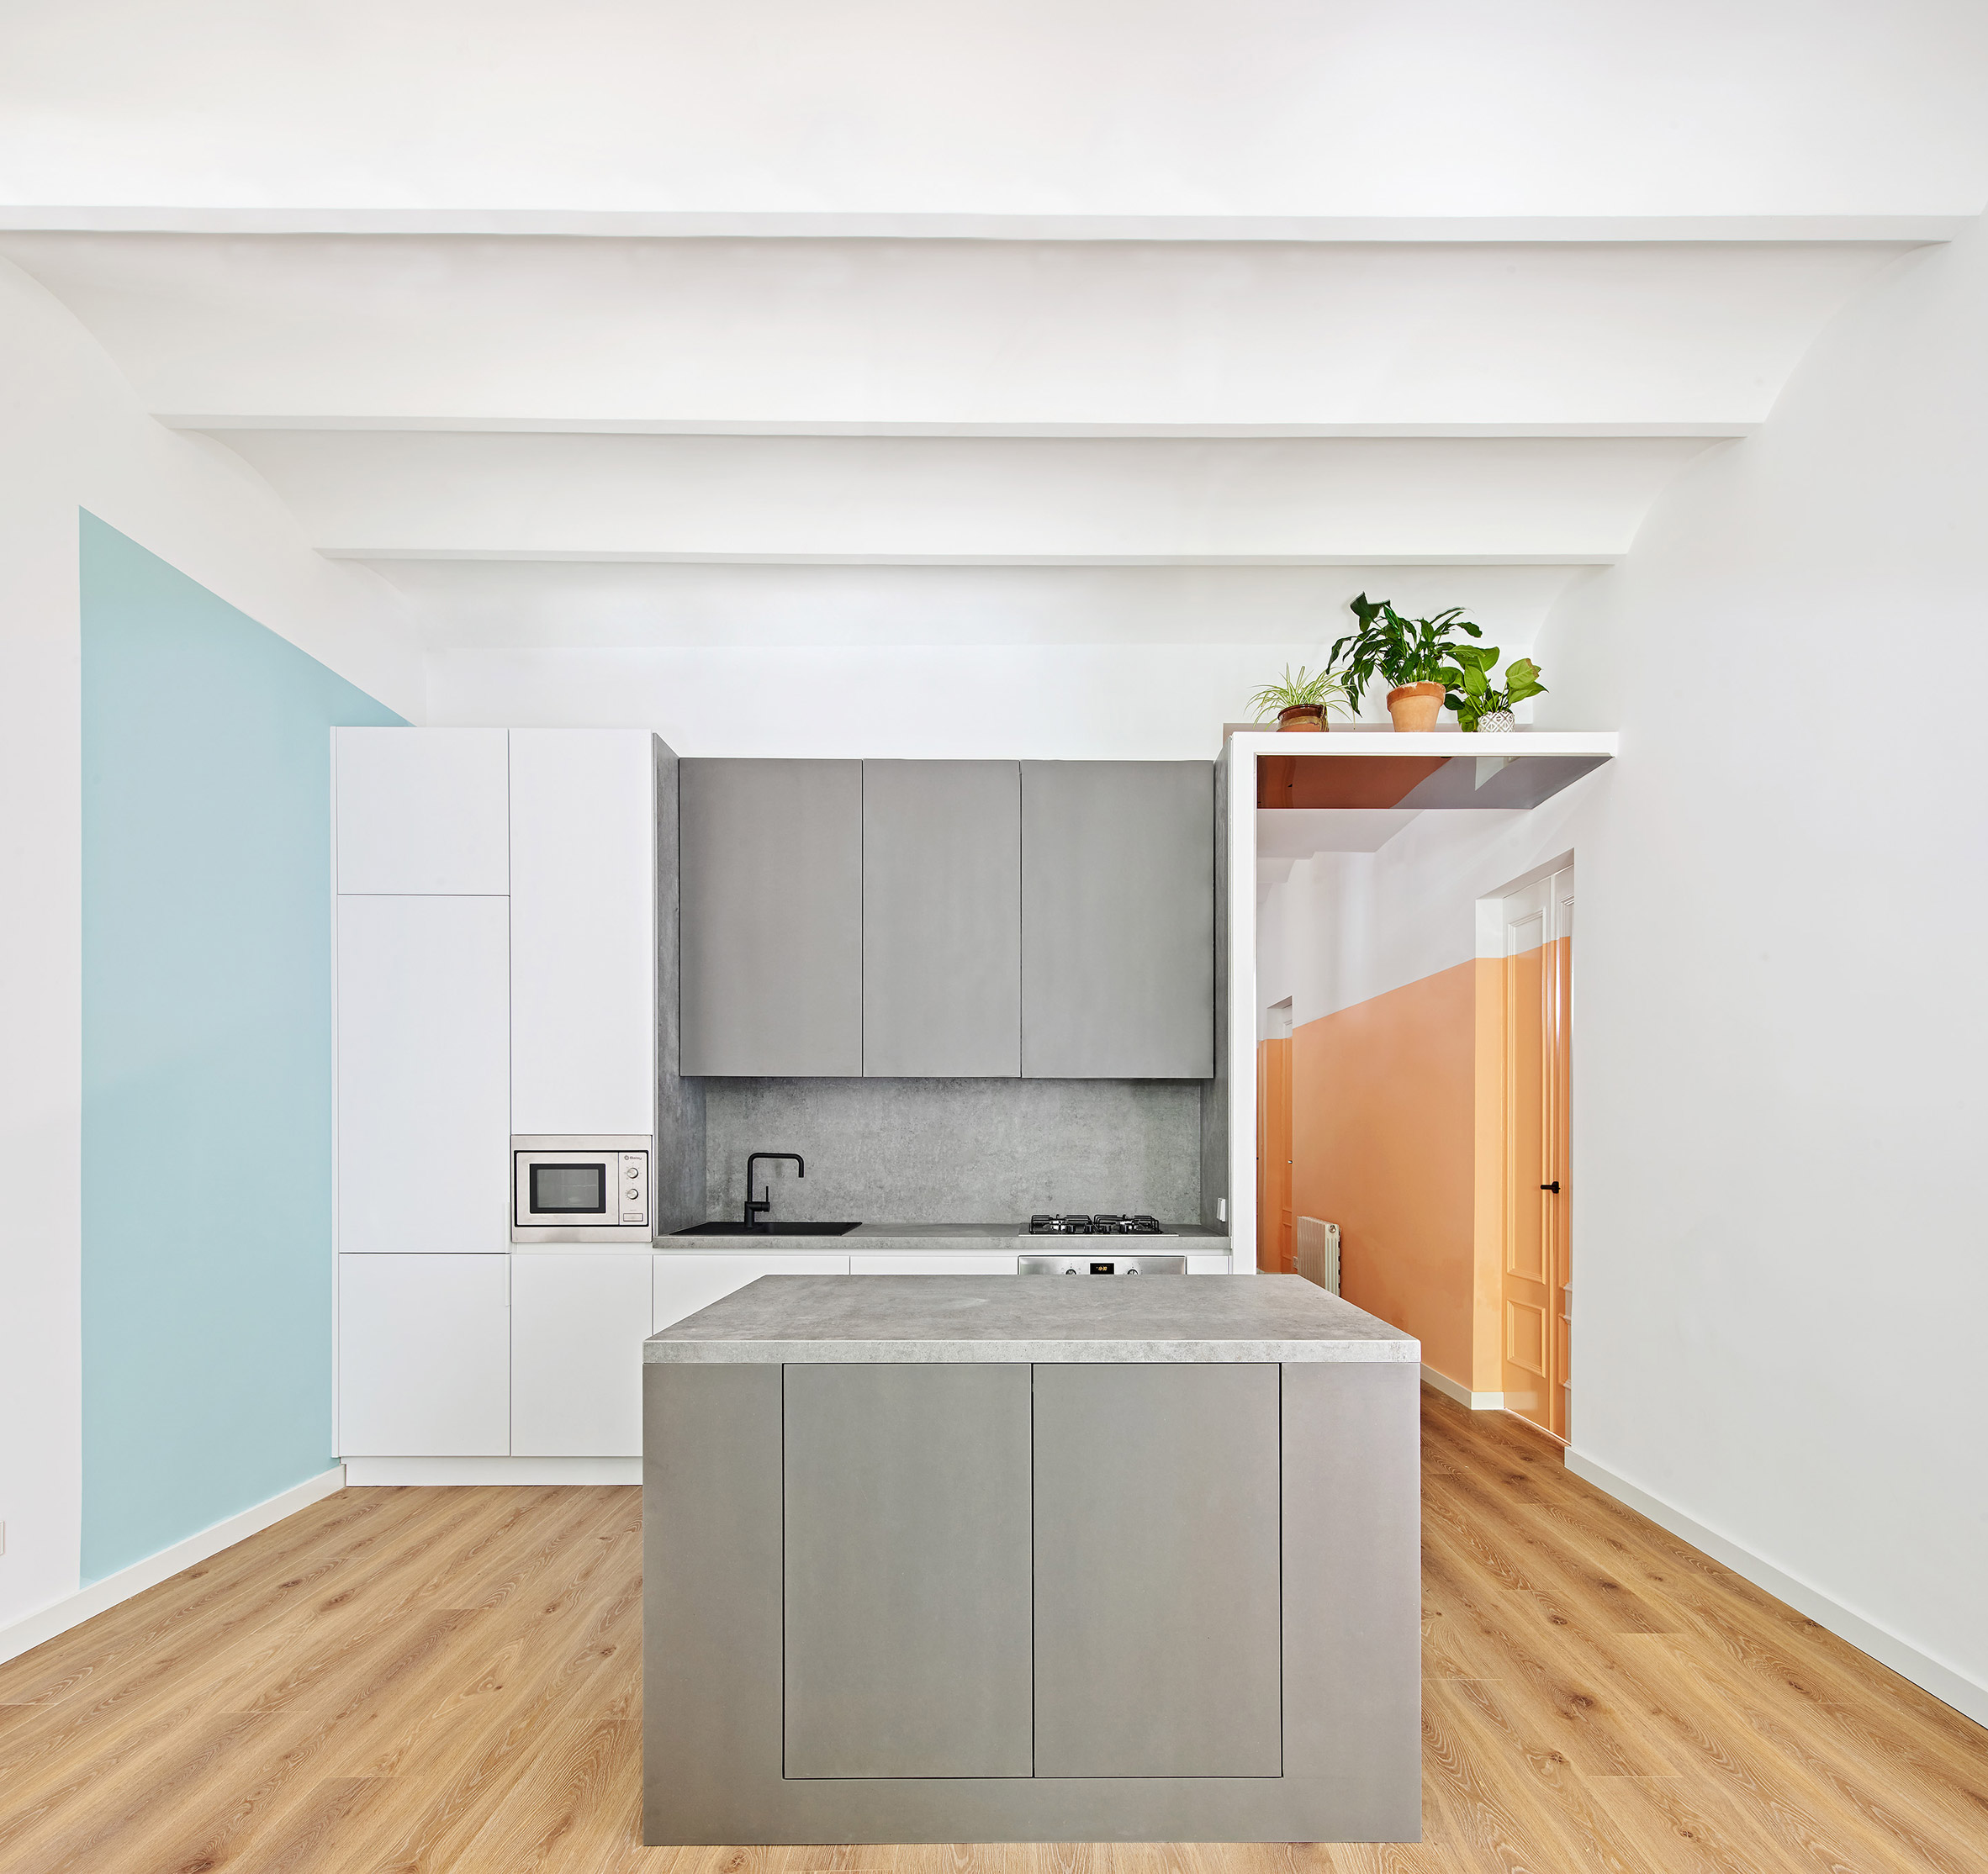 The kitchen also shows off color blocking with graphite grey furniture and a light blue square